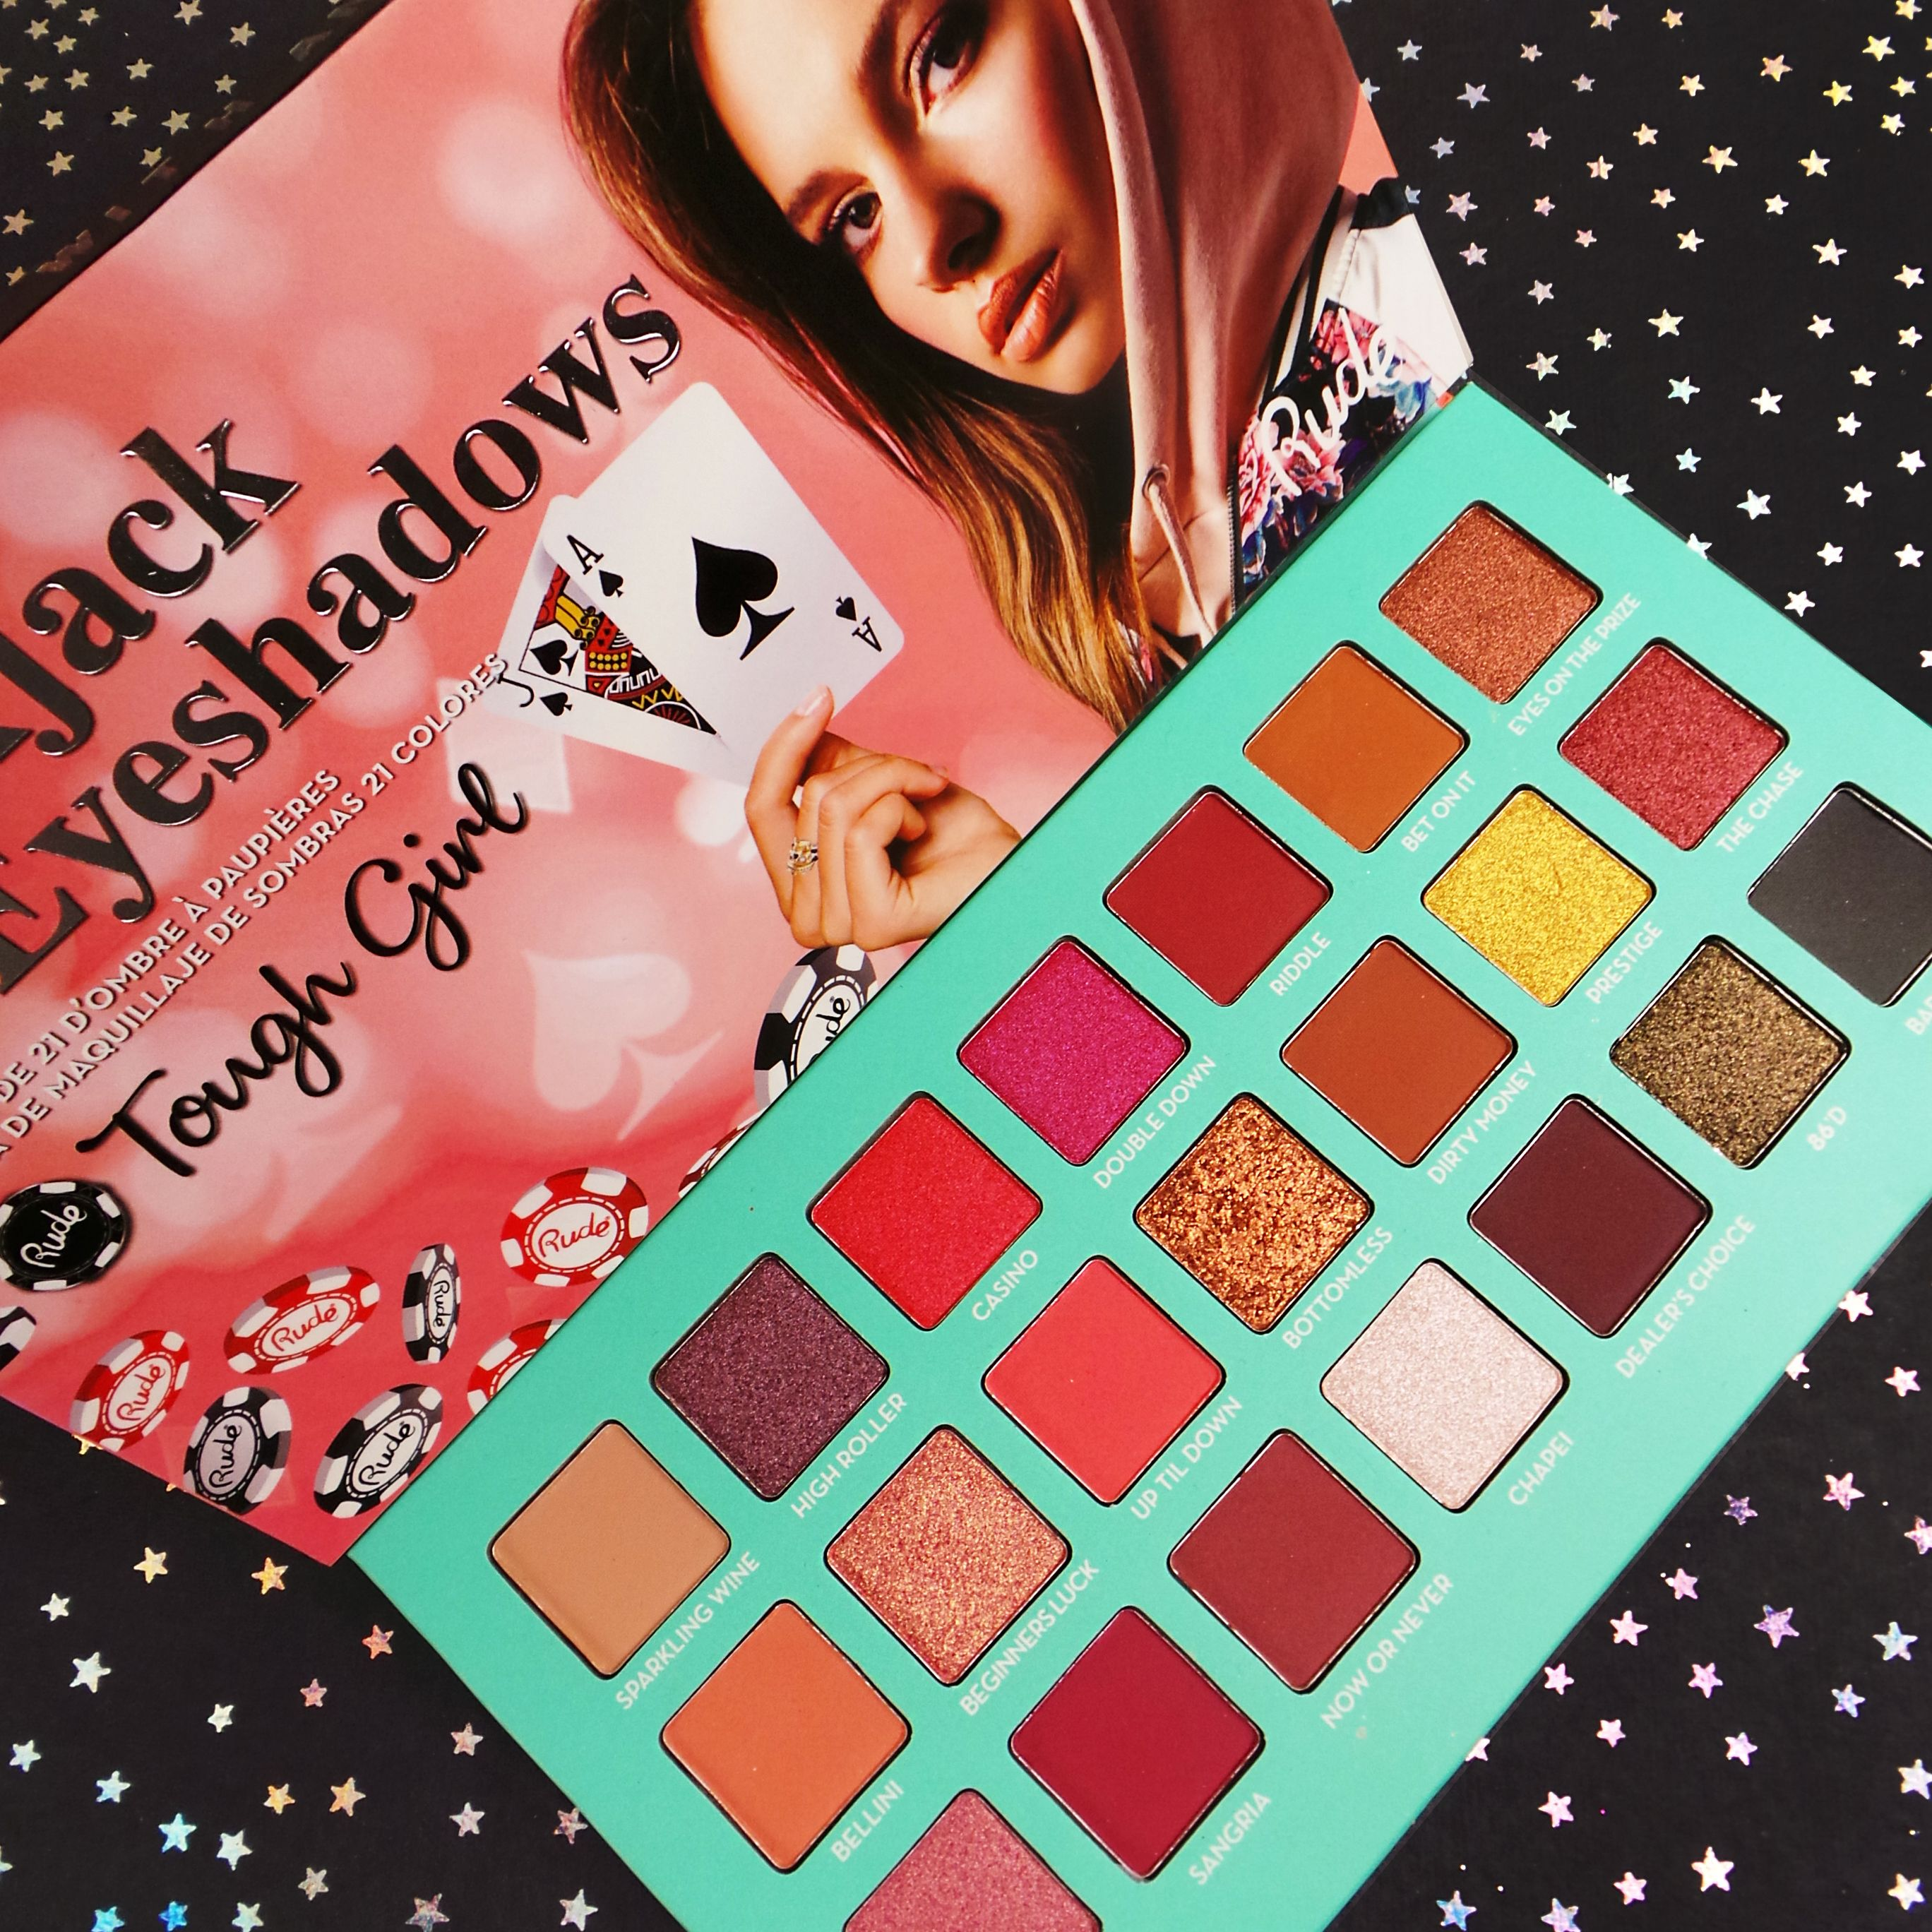 dd32935e5564 Blackjack 21 Eyeshadows collection will be available end of this ...